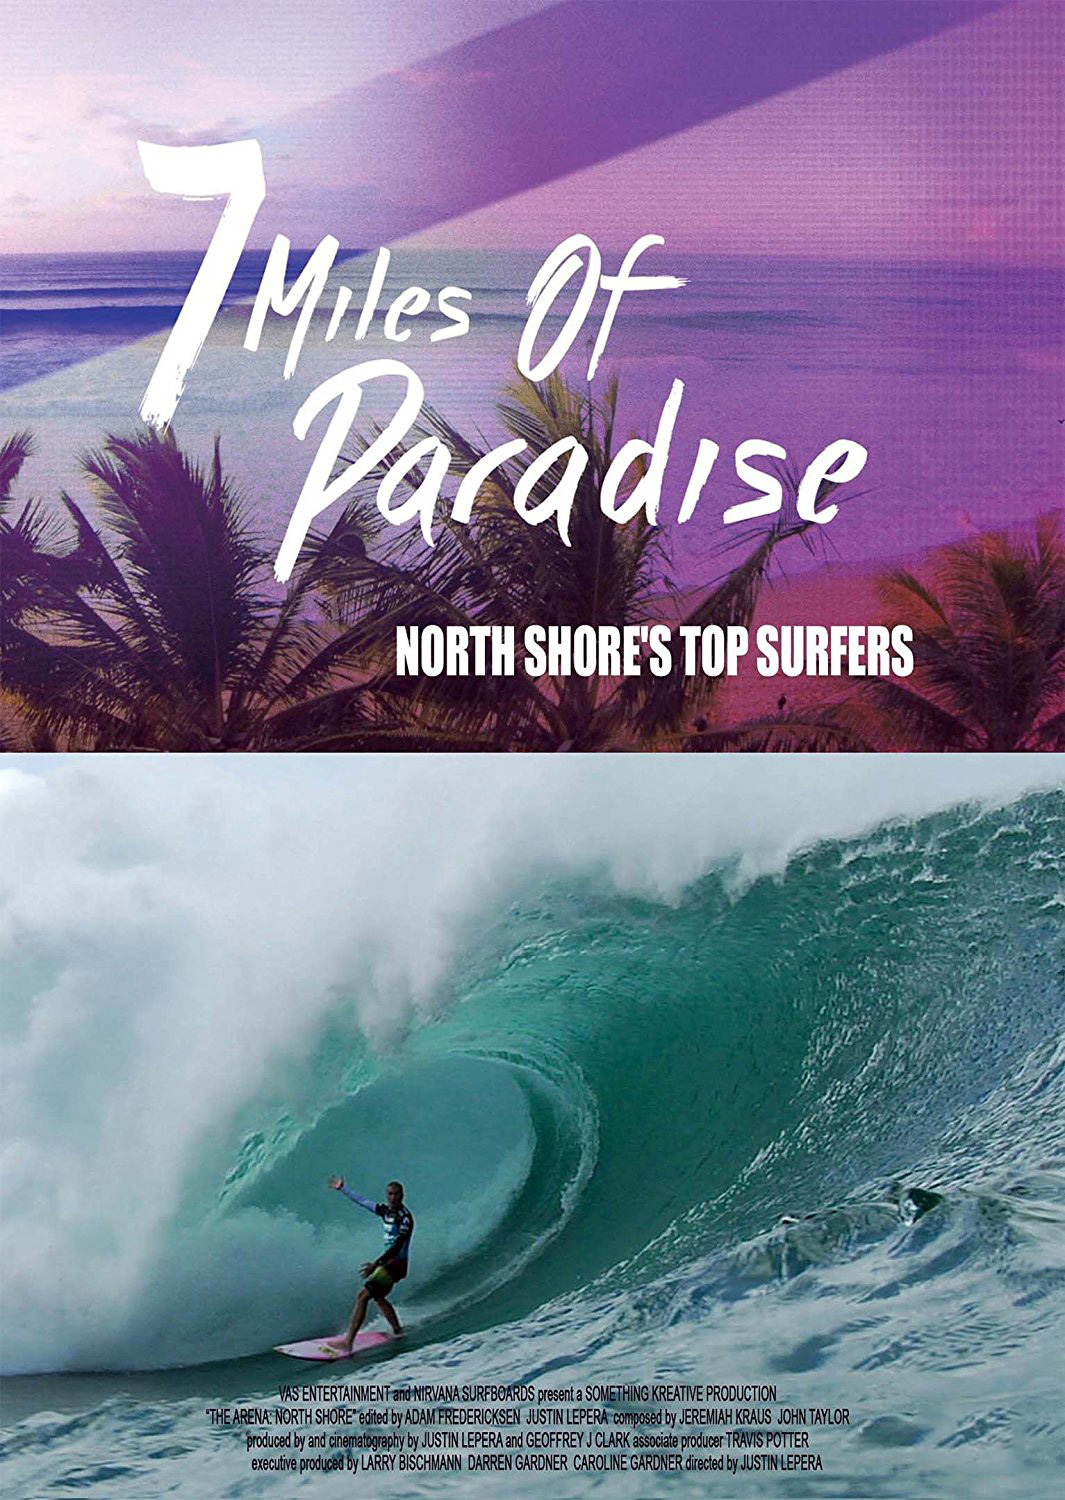 7 Miles of Paradise